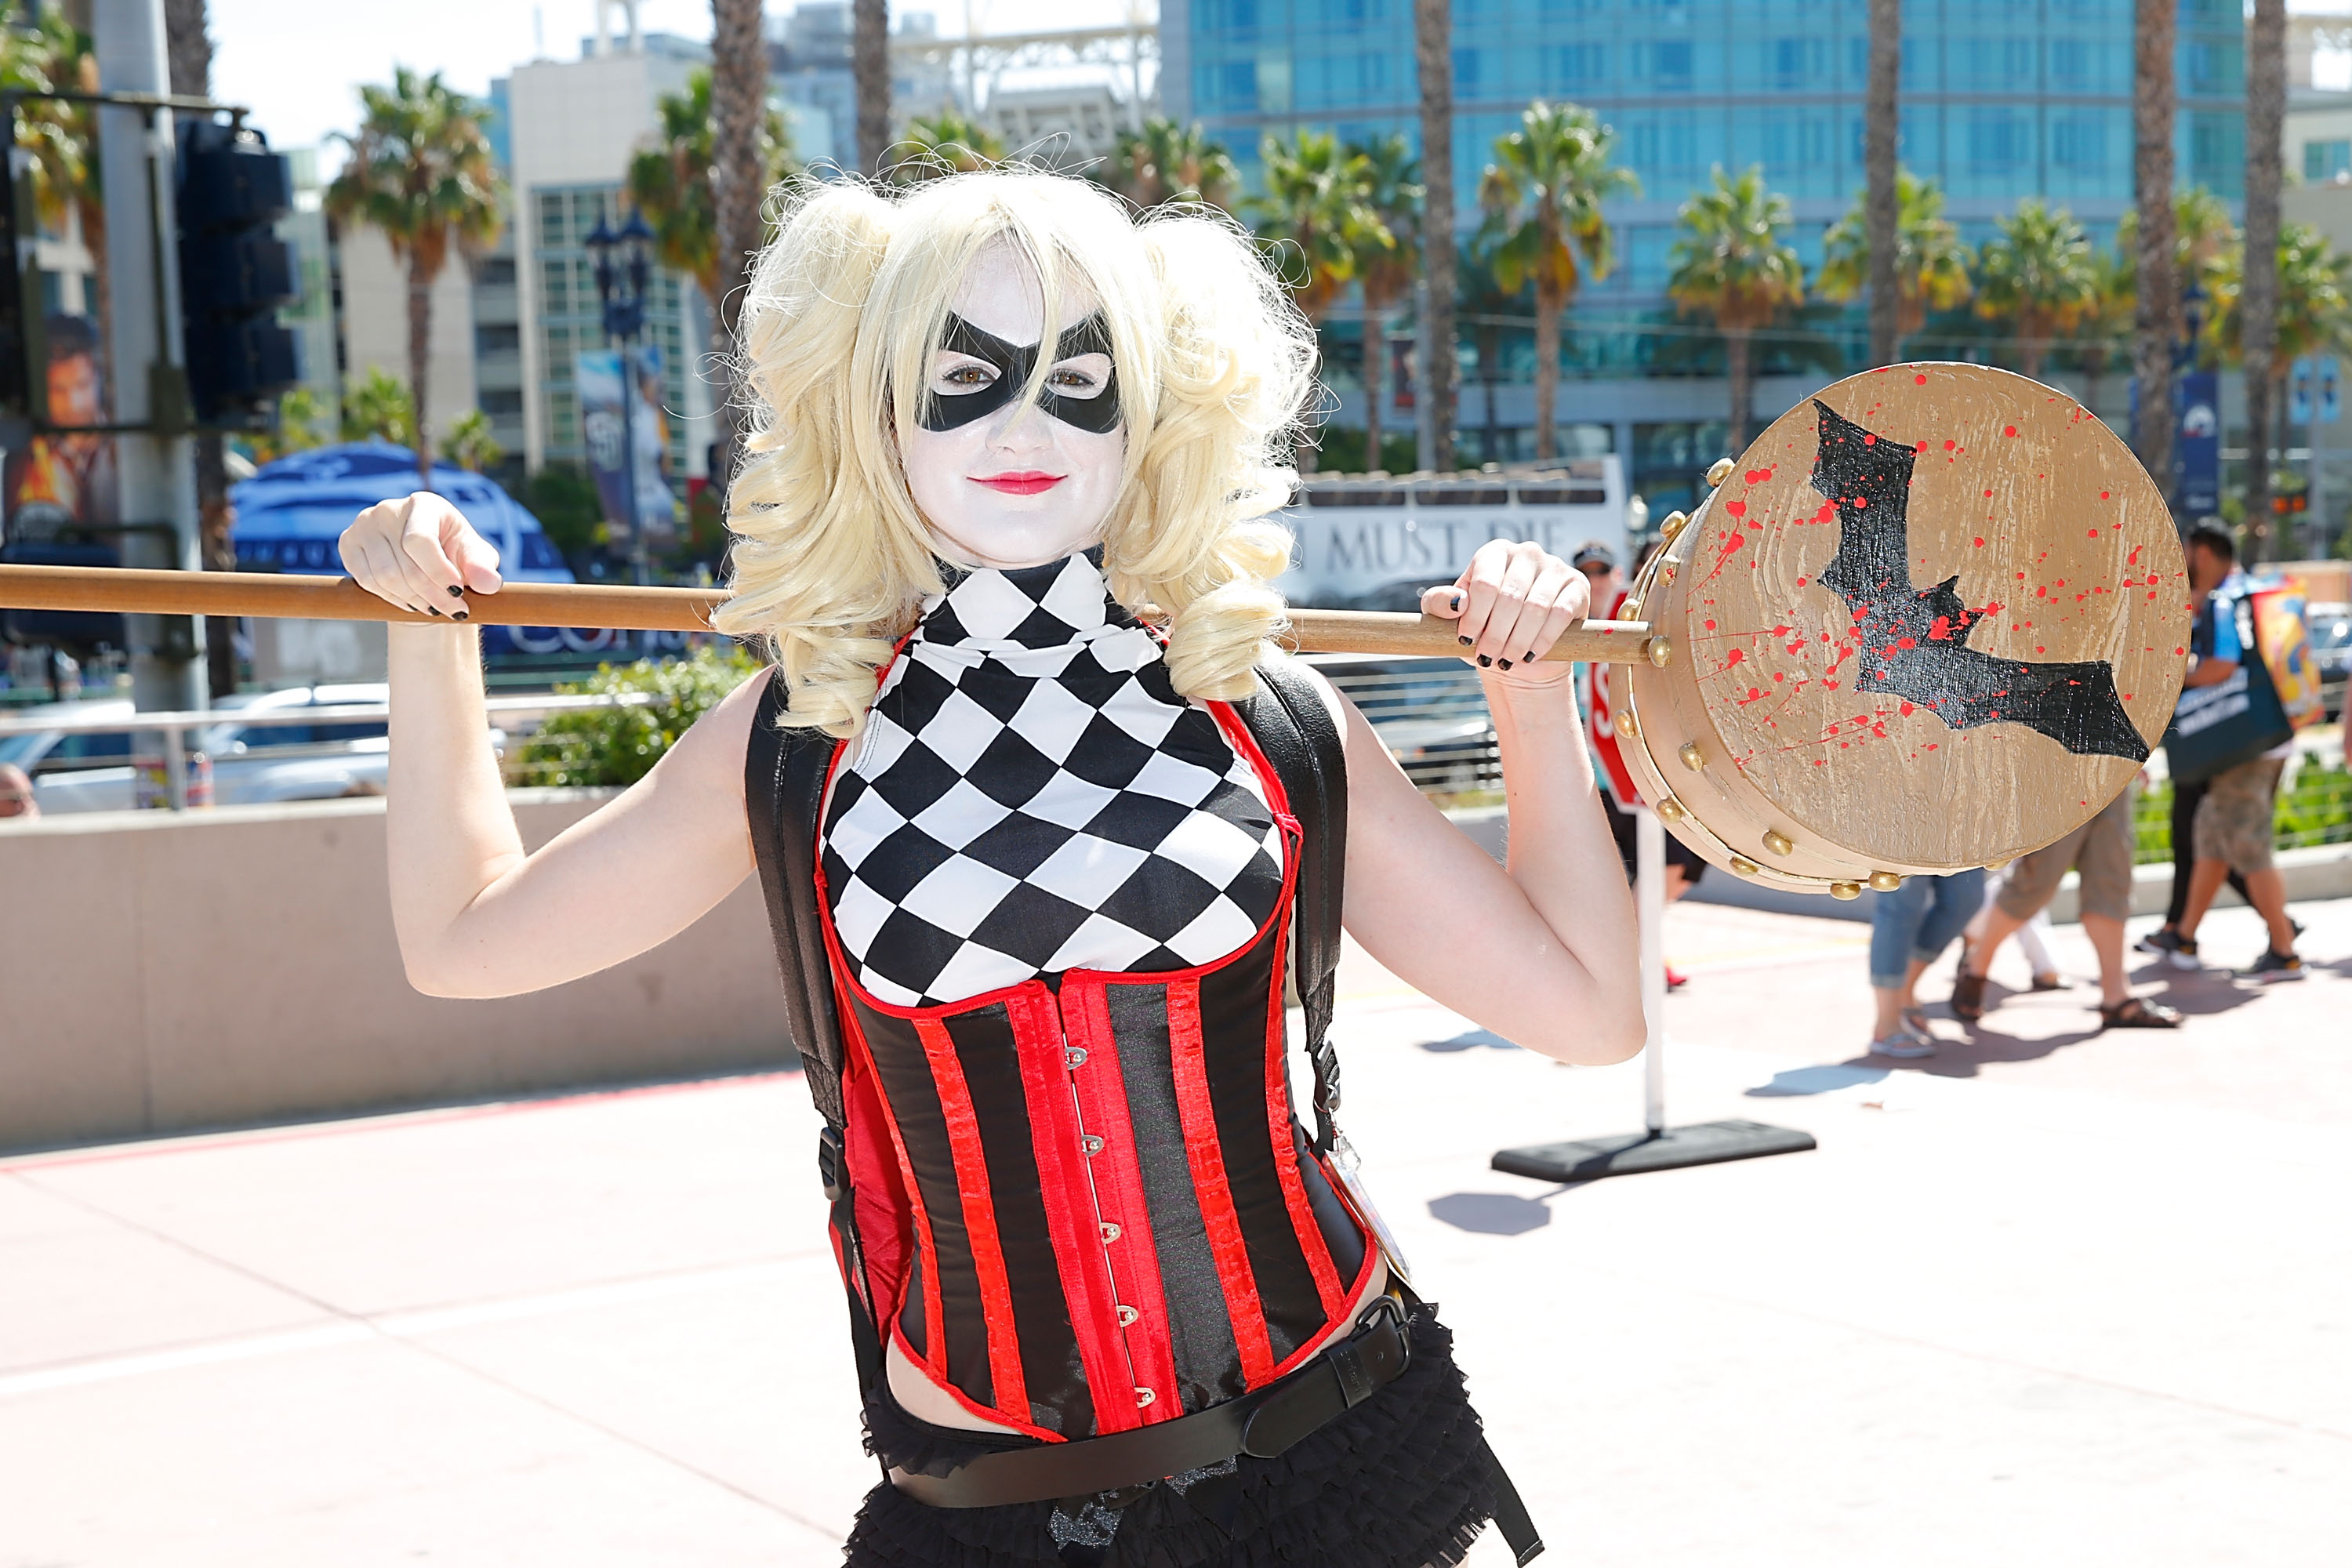 A costumed guest attends Comic-Con International 2014 - Day 1 on July 24, 2014 in San Diego, California.